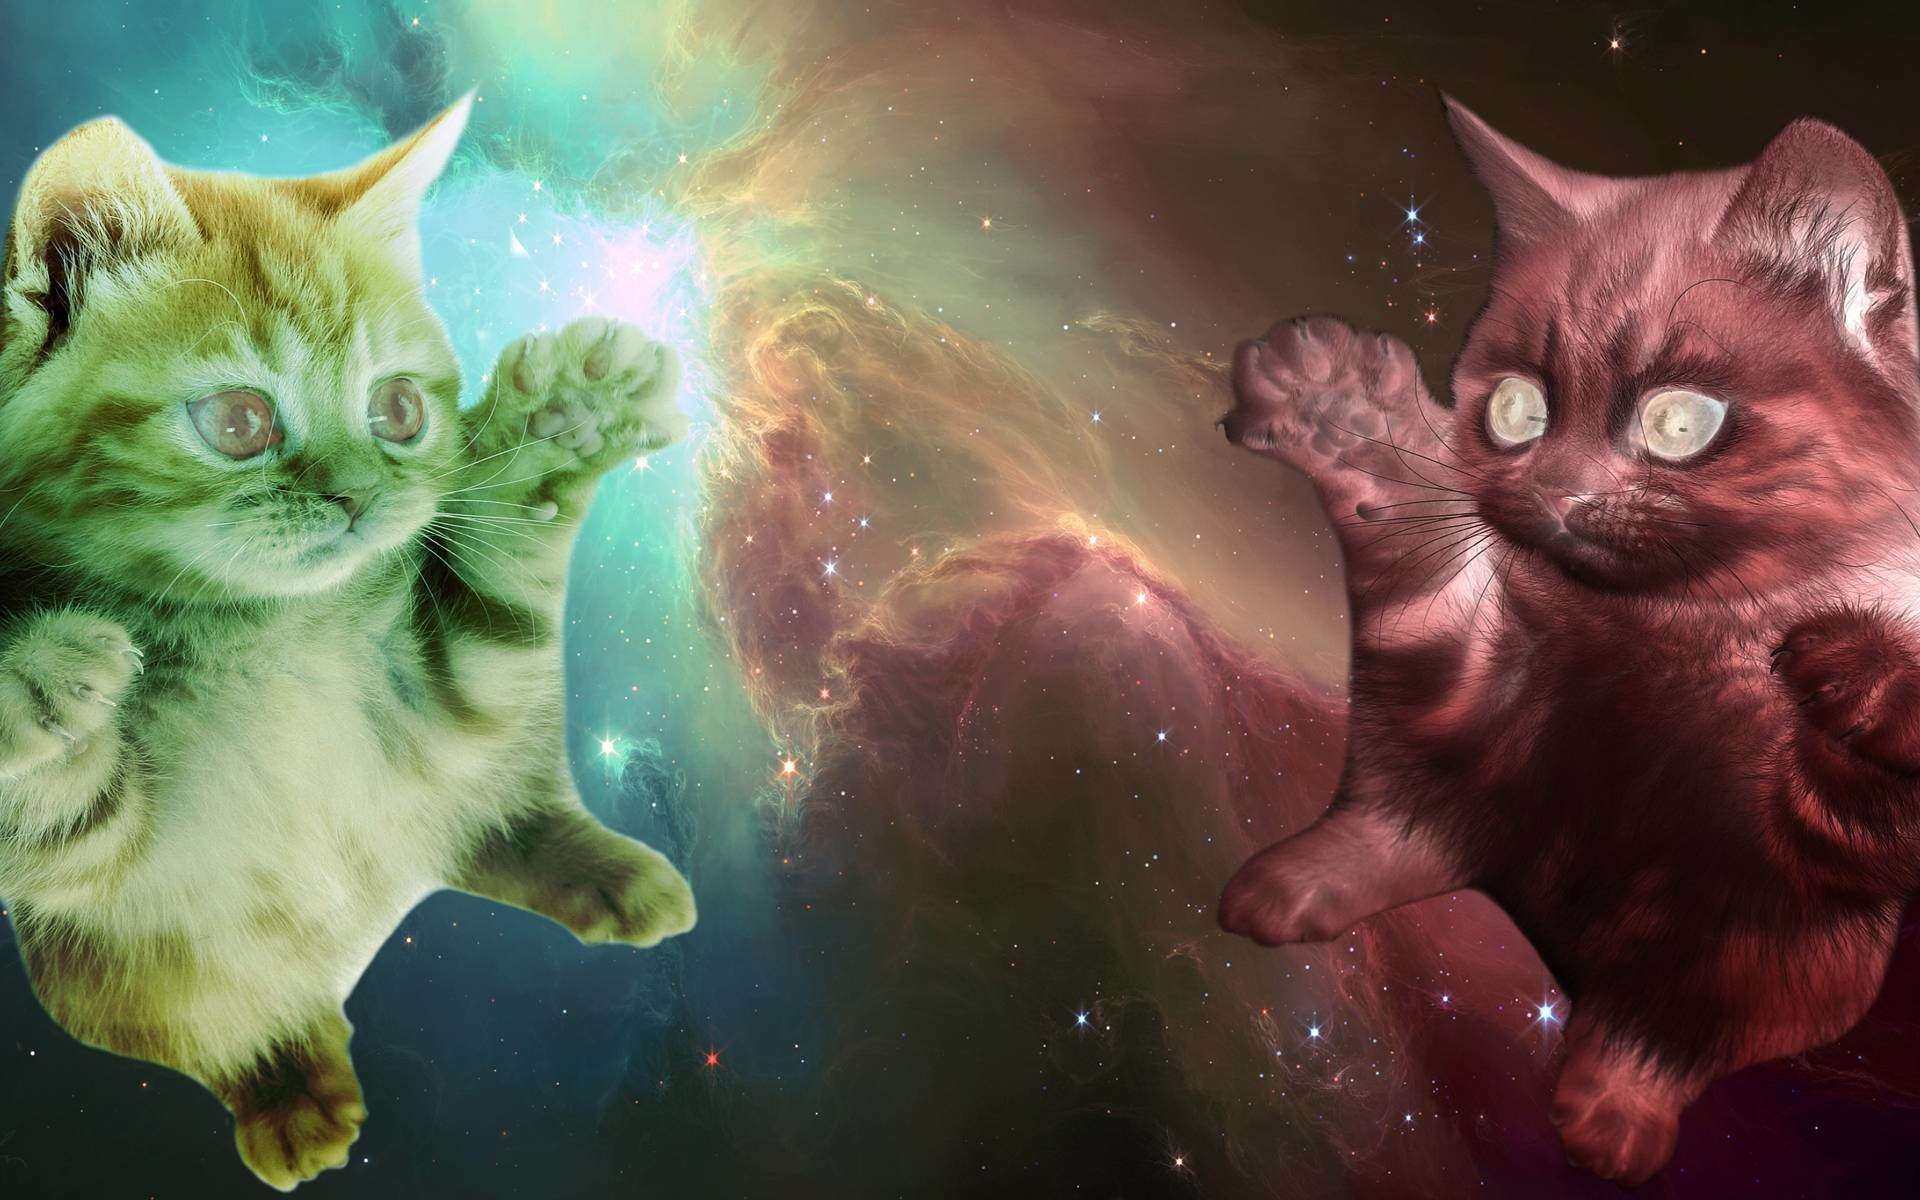 My collection of OC (outerspace cats) These have been fun to do. I will  keep making them and adding them to the album later.